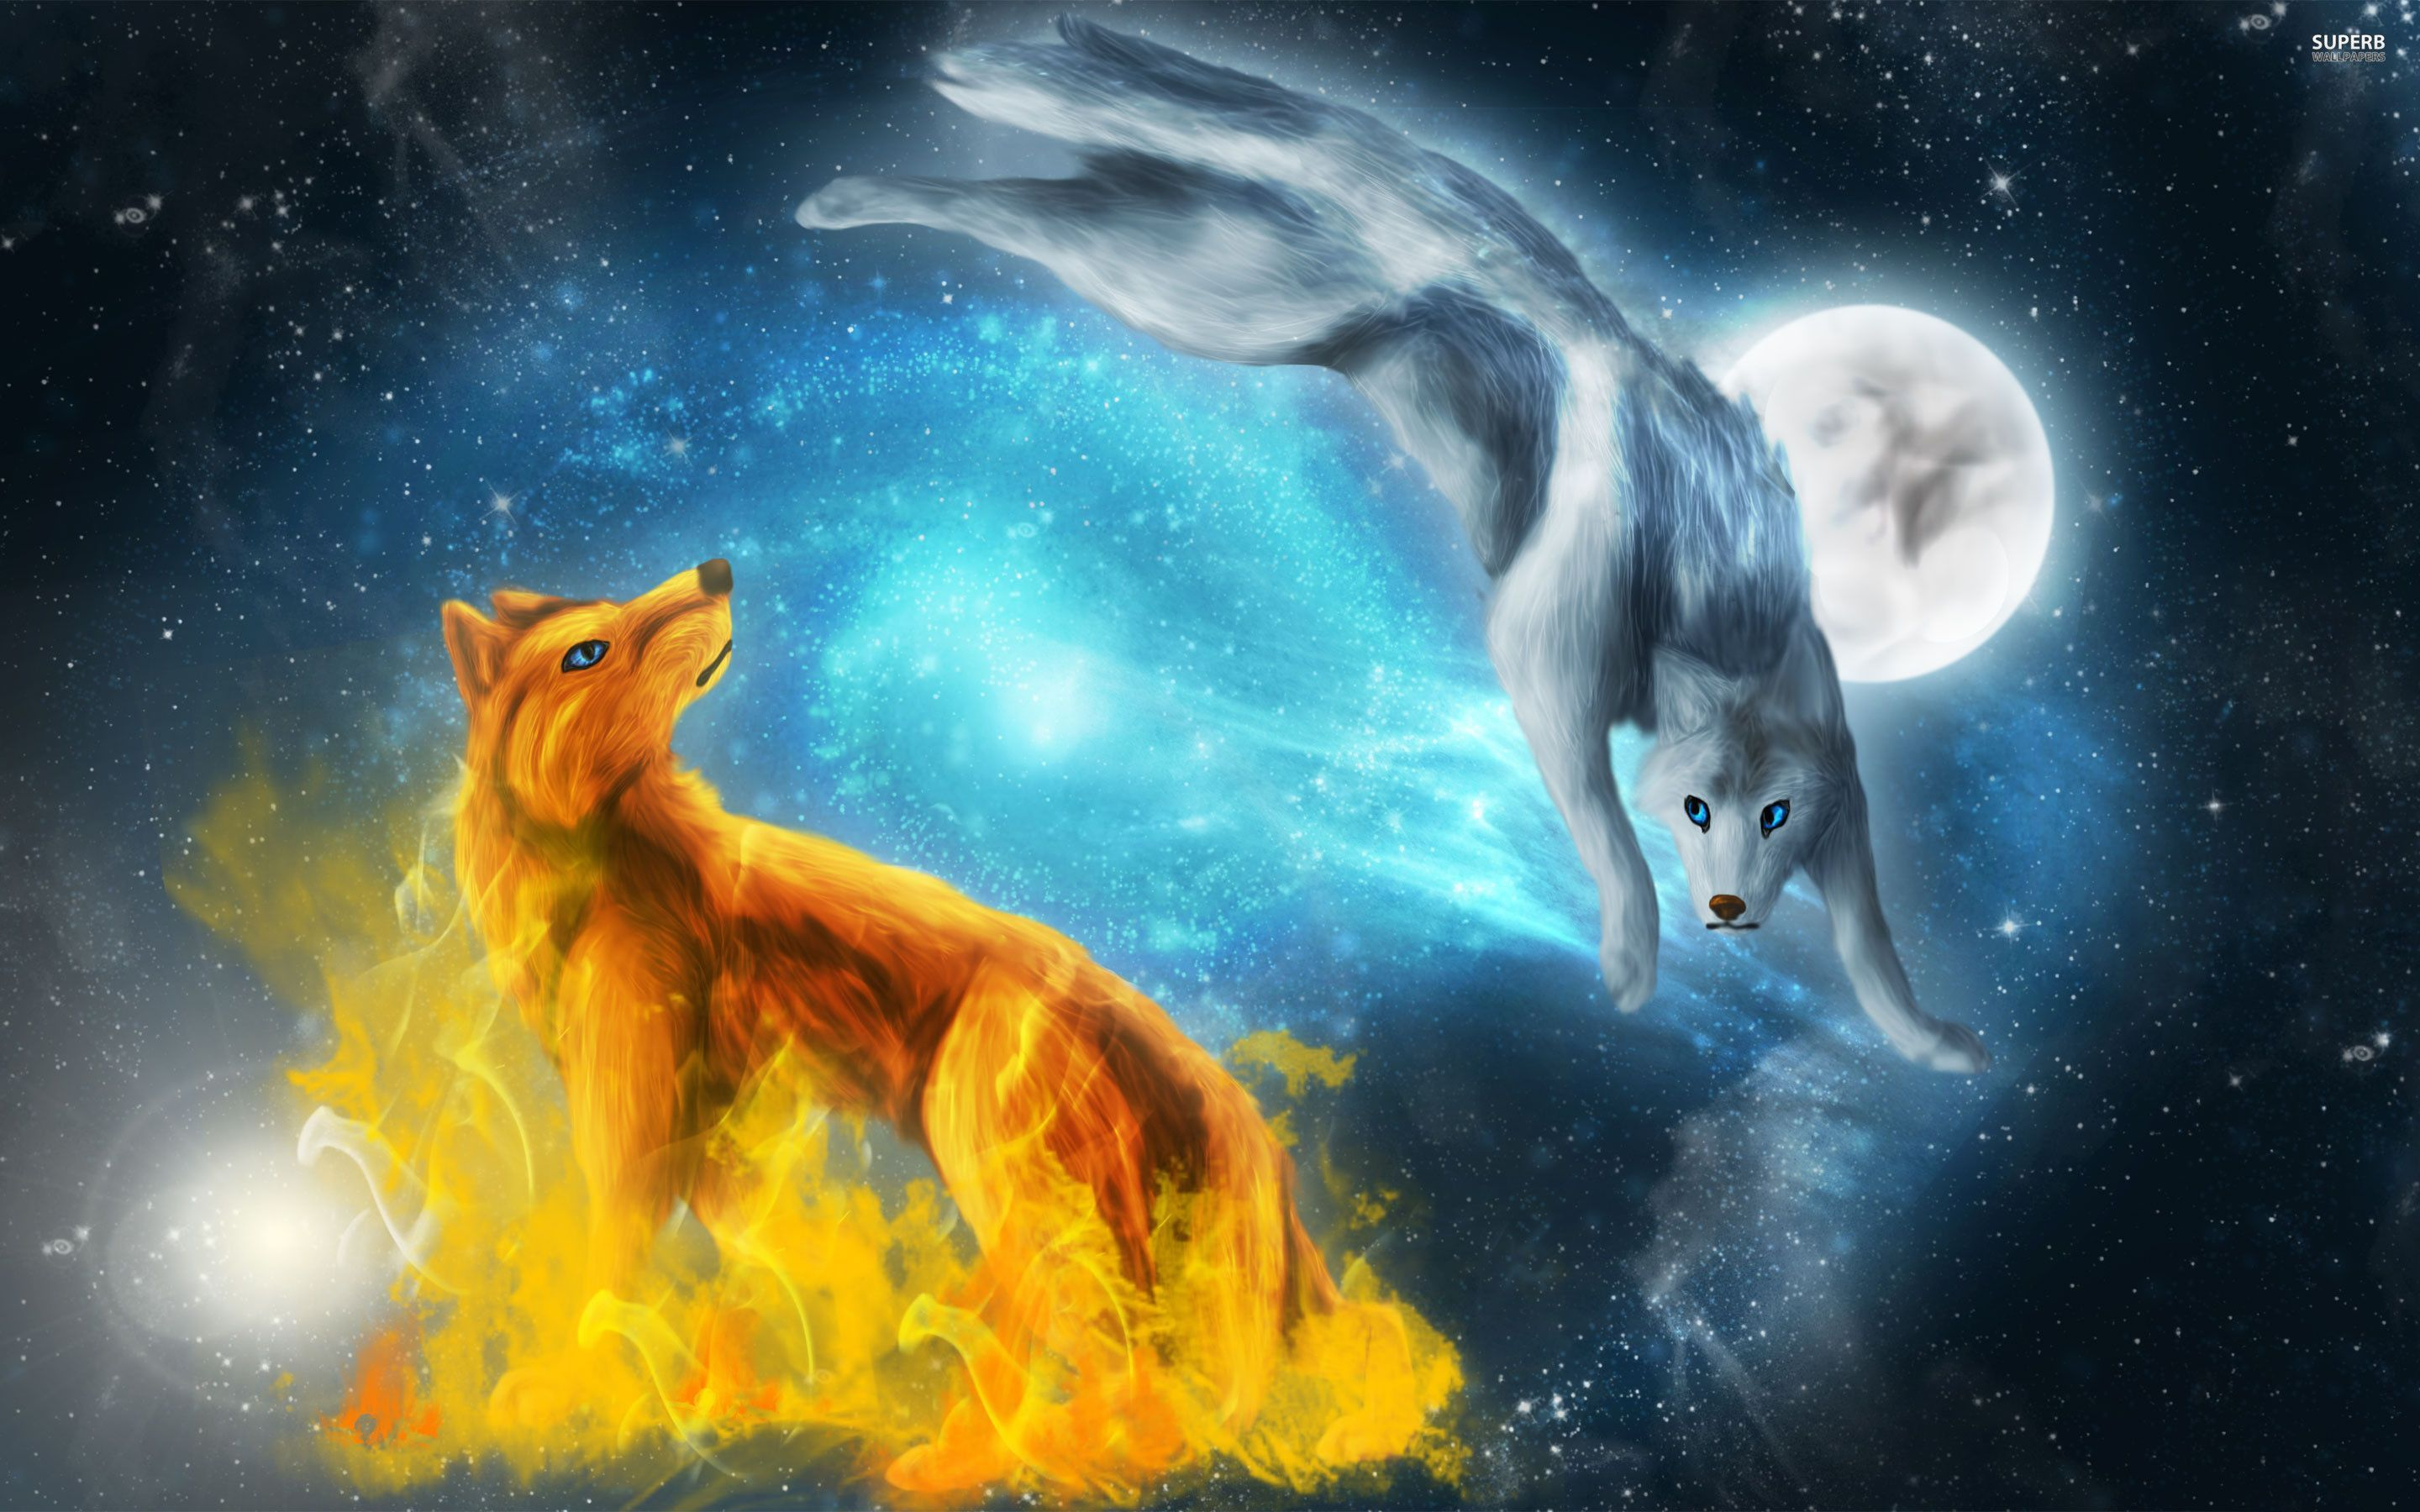 Fantasy Wolf Wallpapers Wallpaper Cave Wolf Wallpaper Ice Wolf Wallpaper Fantasy Wolf